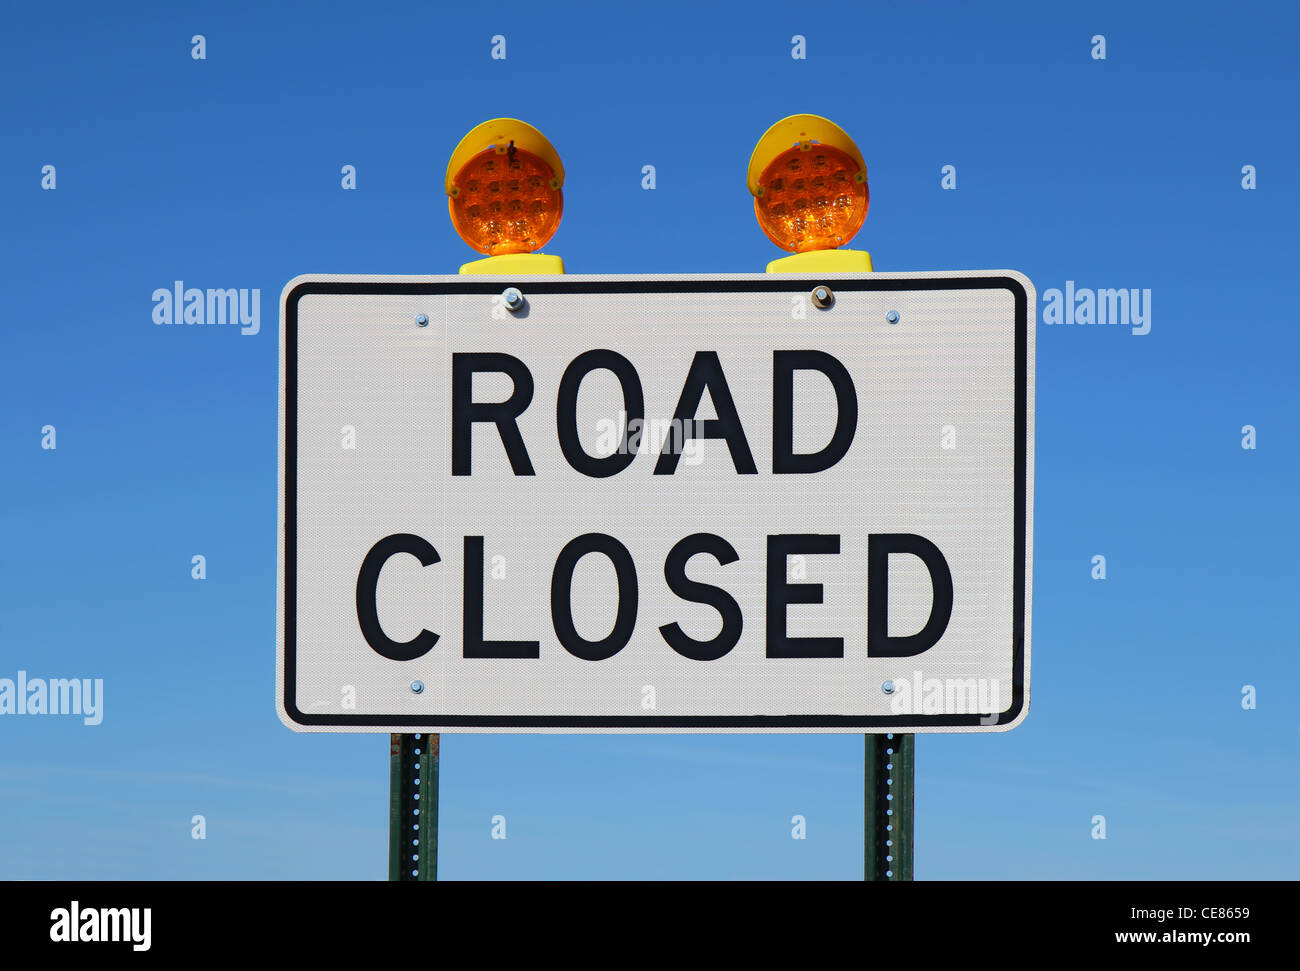 Road closed sign with orange lights against a bright blue sky - Stock Image